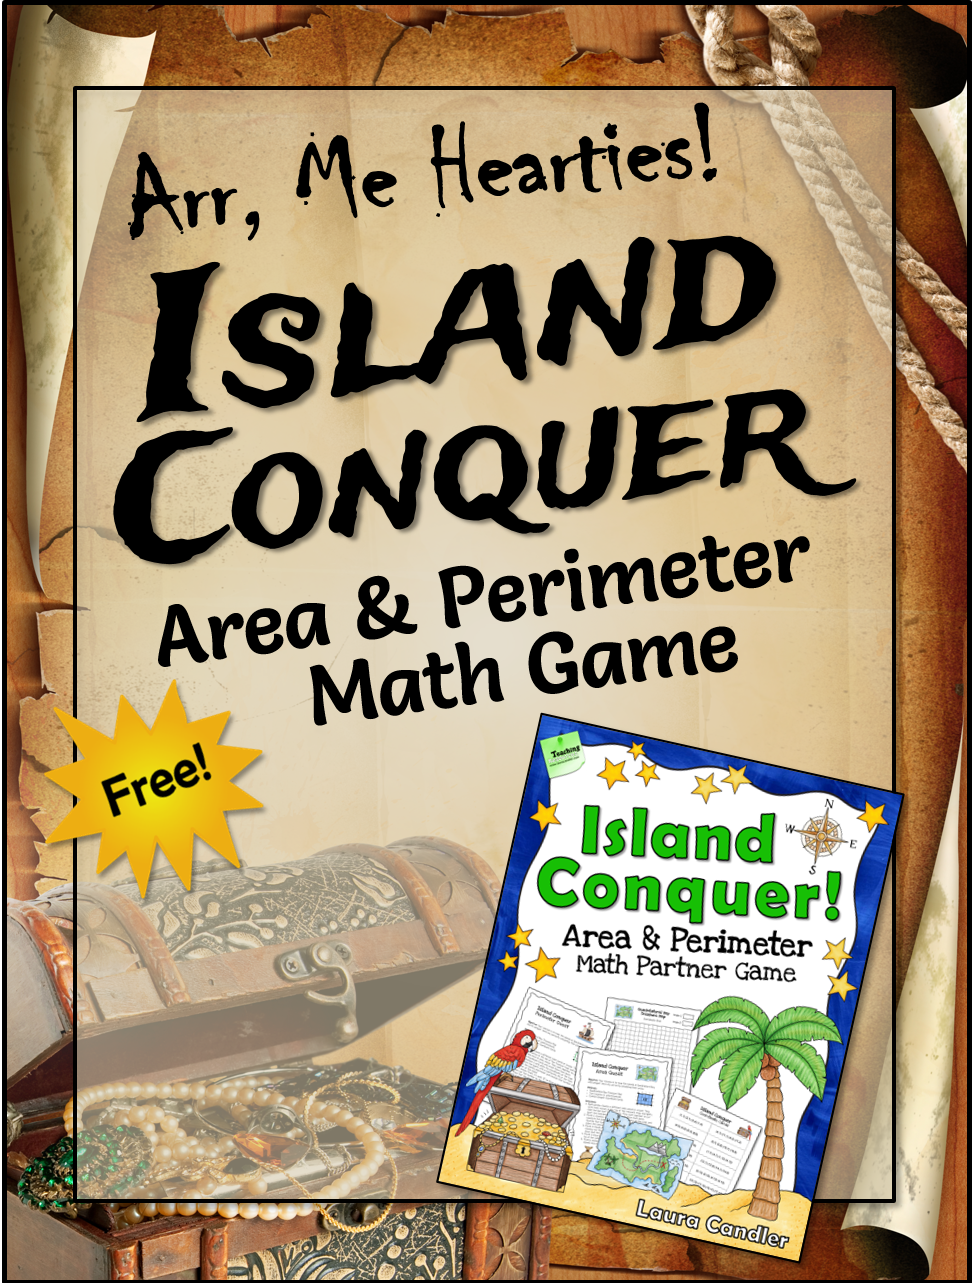 Arr, Me Hearties! Island Conquer Gets a Pirate Makeover